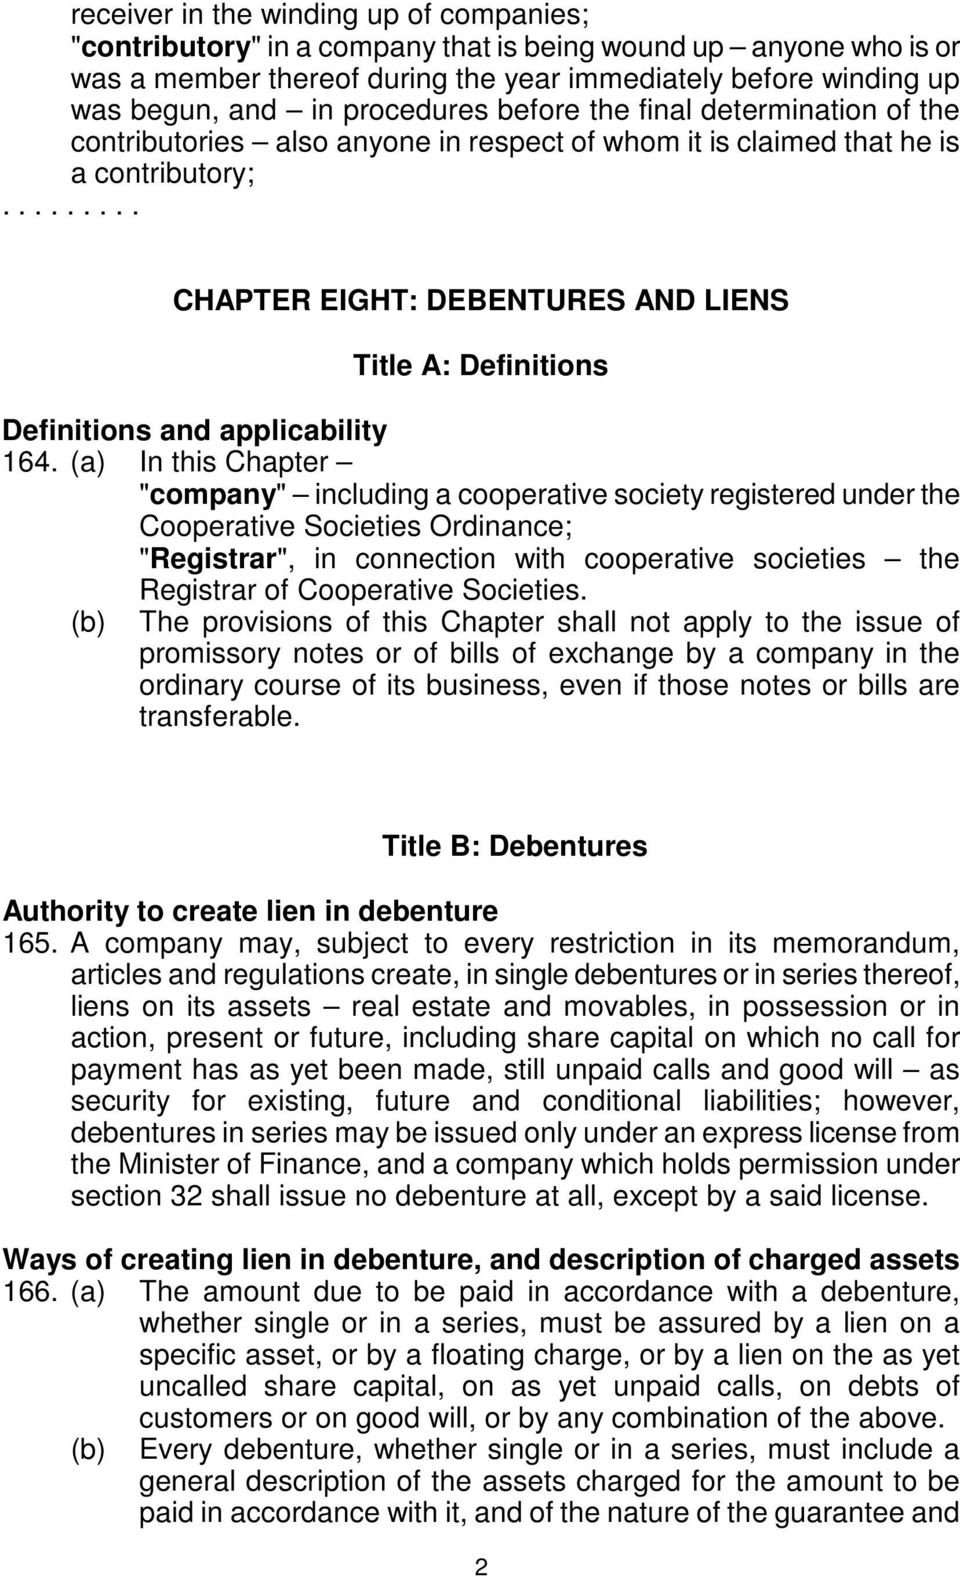 ........ CHAPTER EIGHT: DEBENTURES AND LIENS Title A: Definitions Definitions and applicability 164.